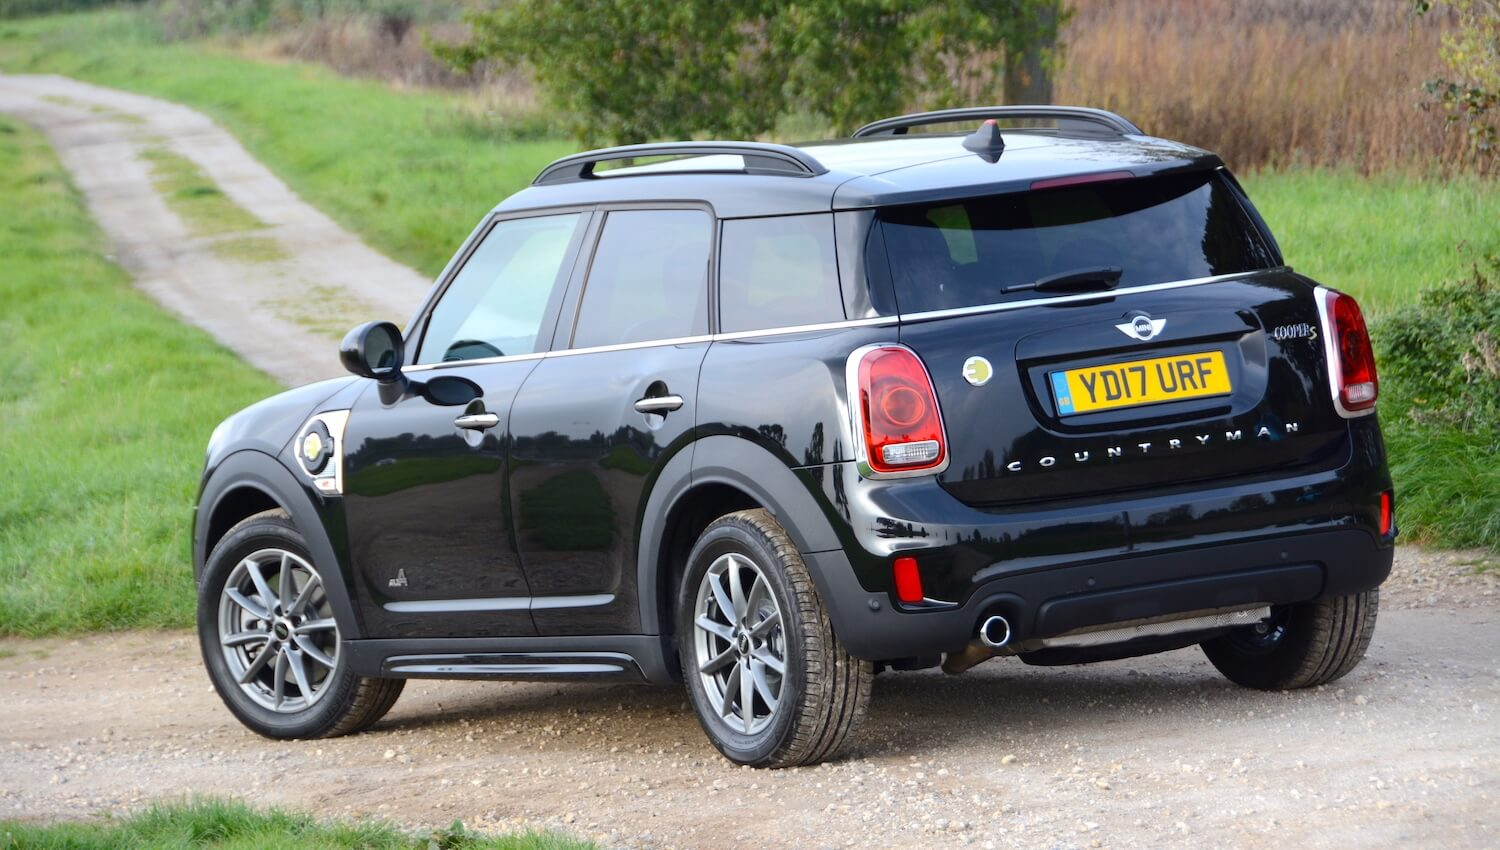 mini cooper s e countryman all4 phev. Black Bedroom Furniture Sets. Home Design Ideas